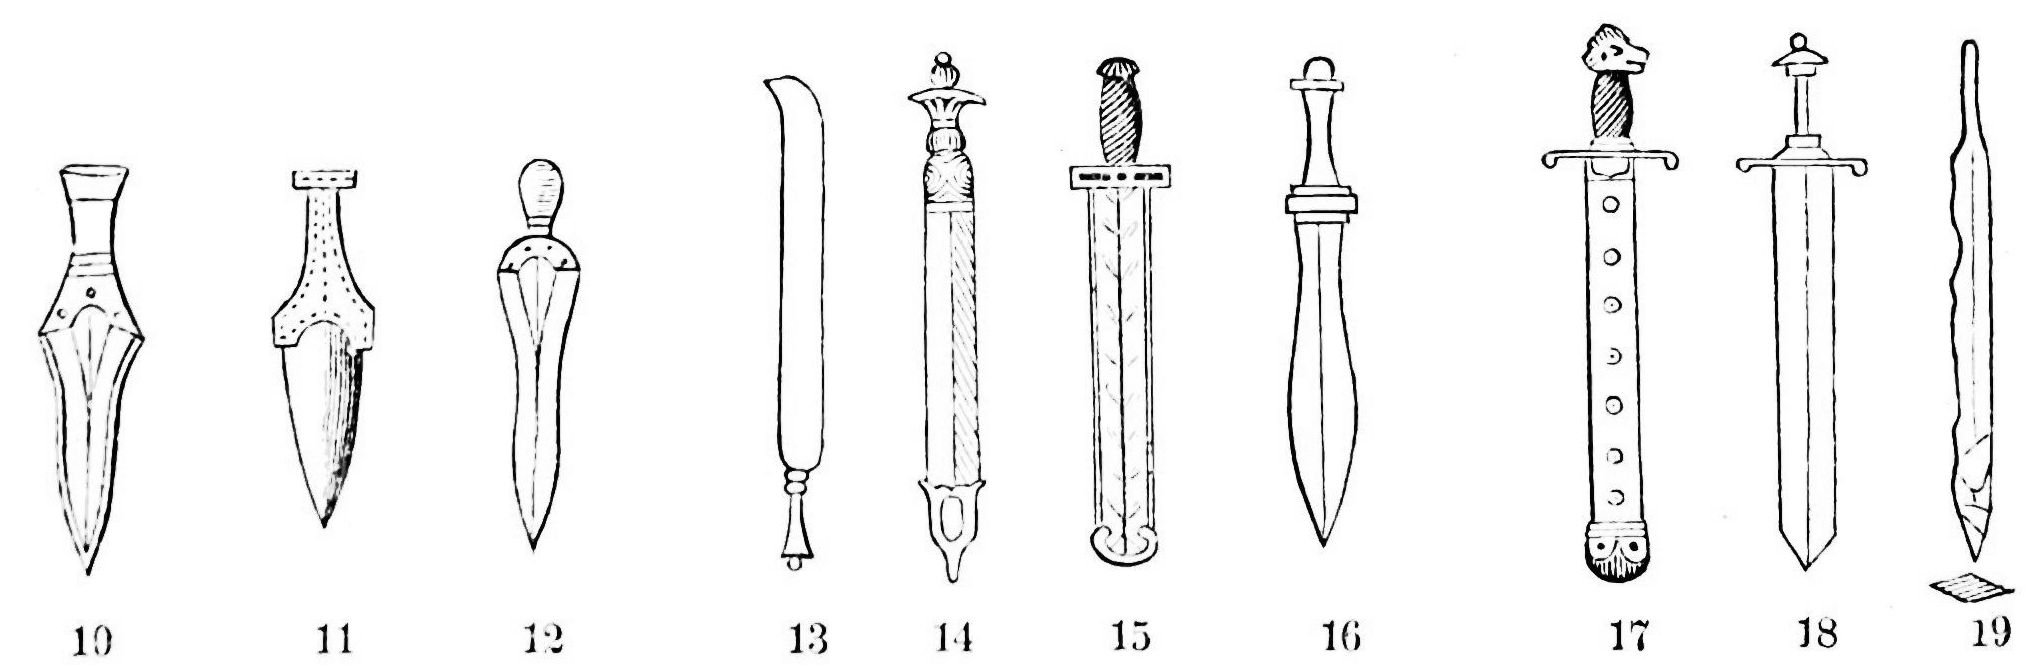 Description PSM V21 D088 Swords and daggers of the ancient world jpgAncient Egyptian Swords And Daggers